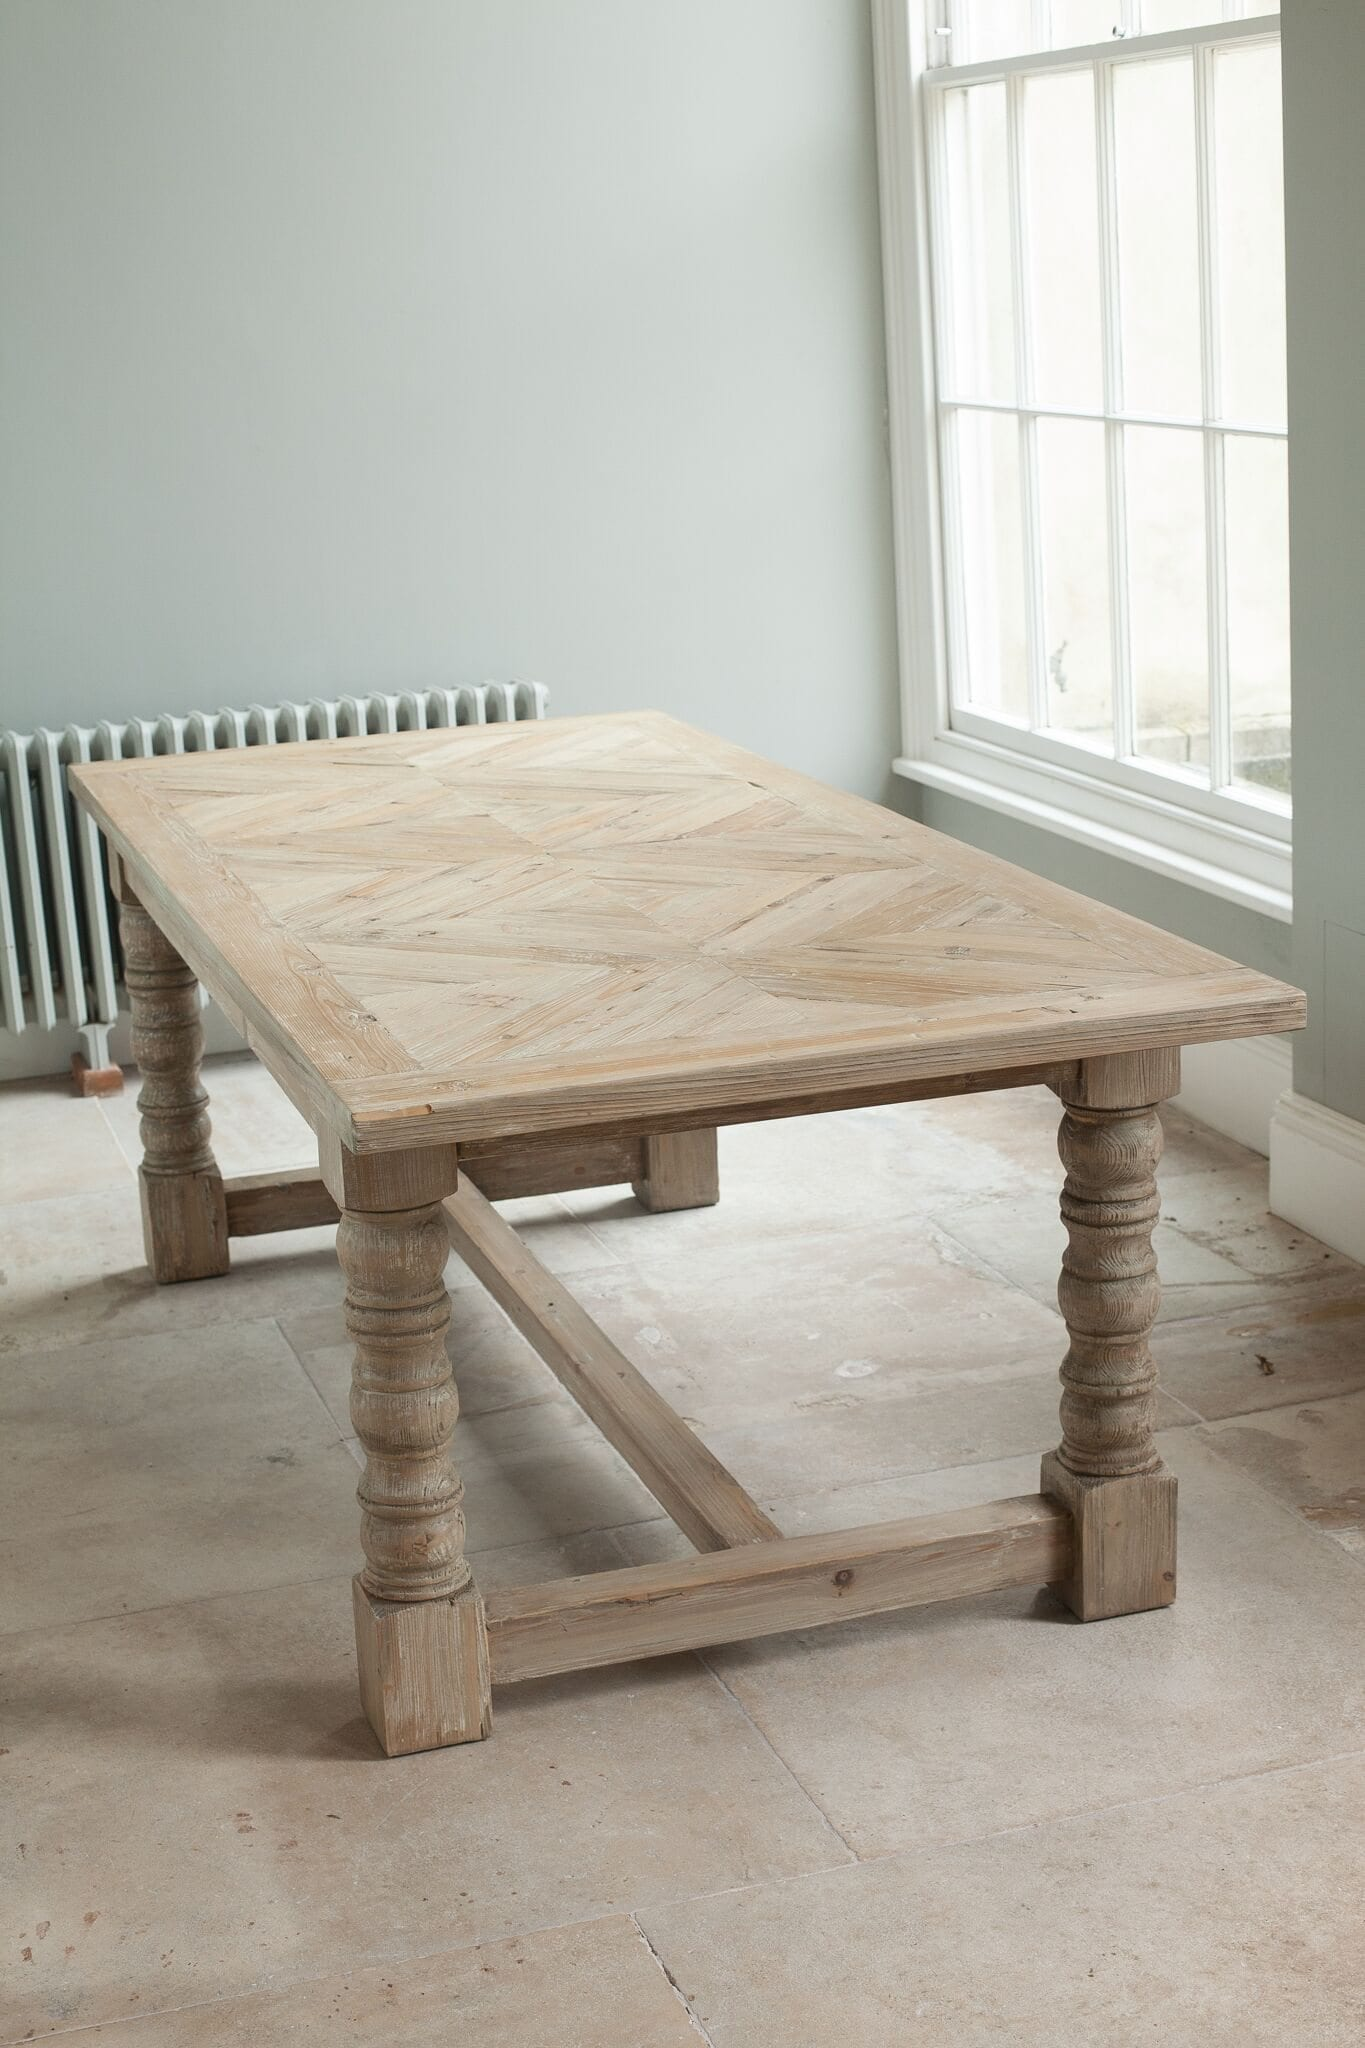 Milford Parquet Natural Refectory Table